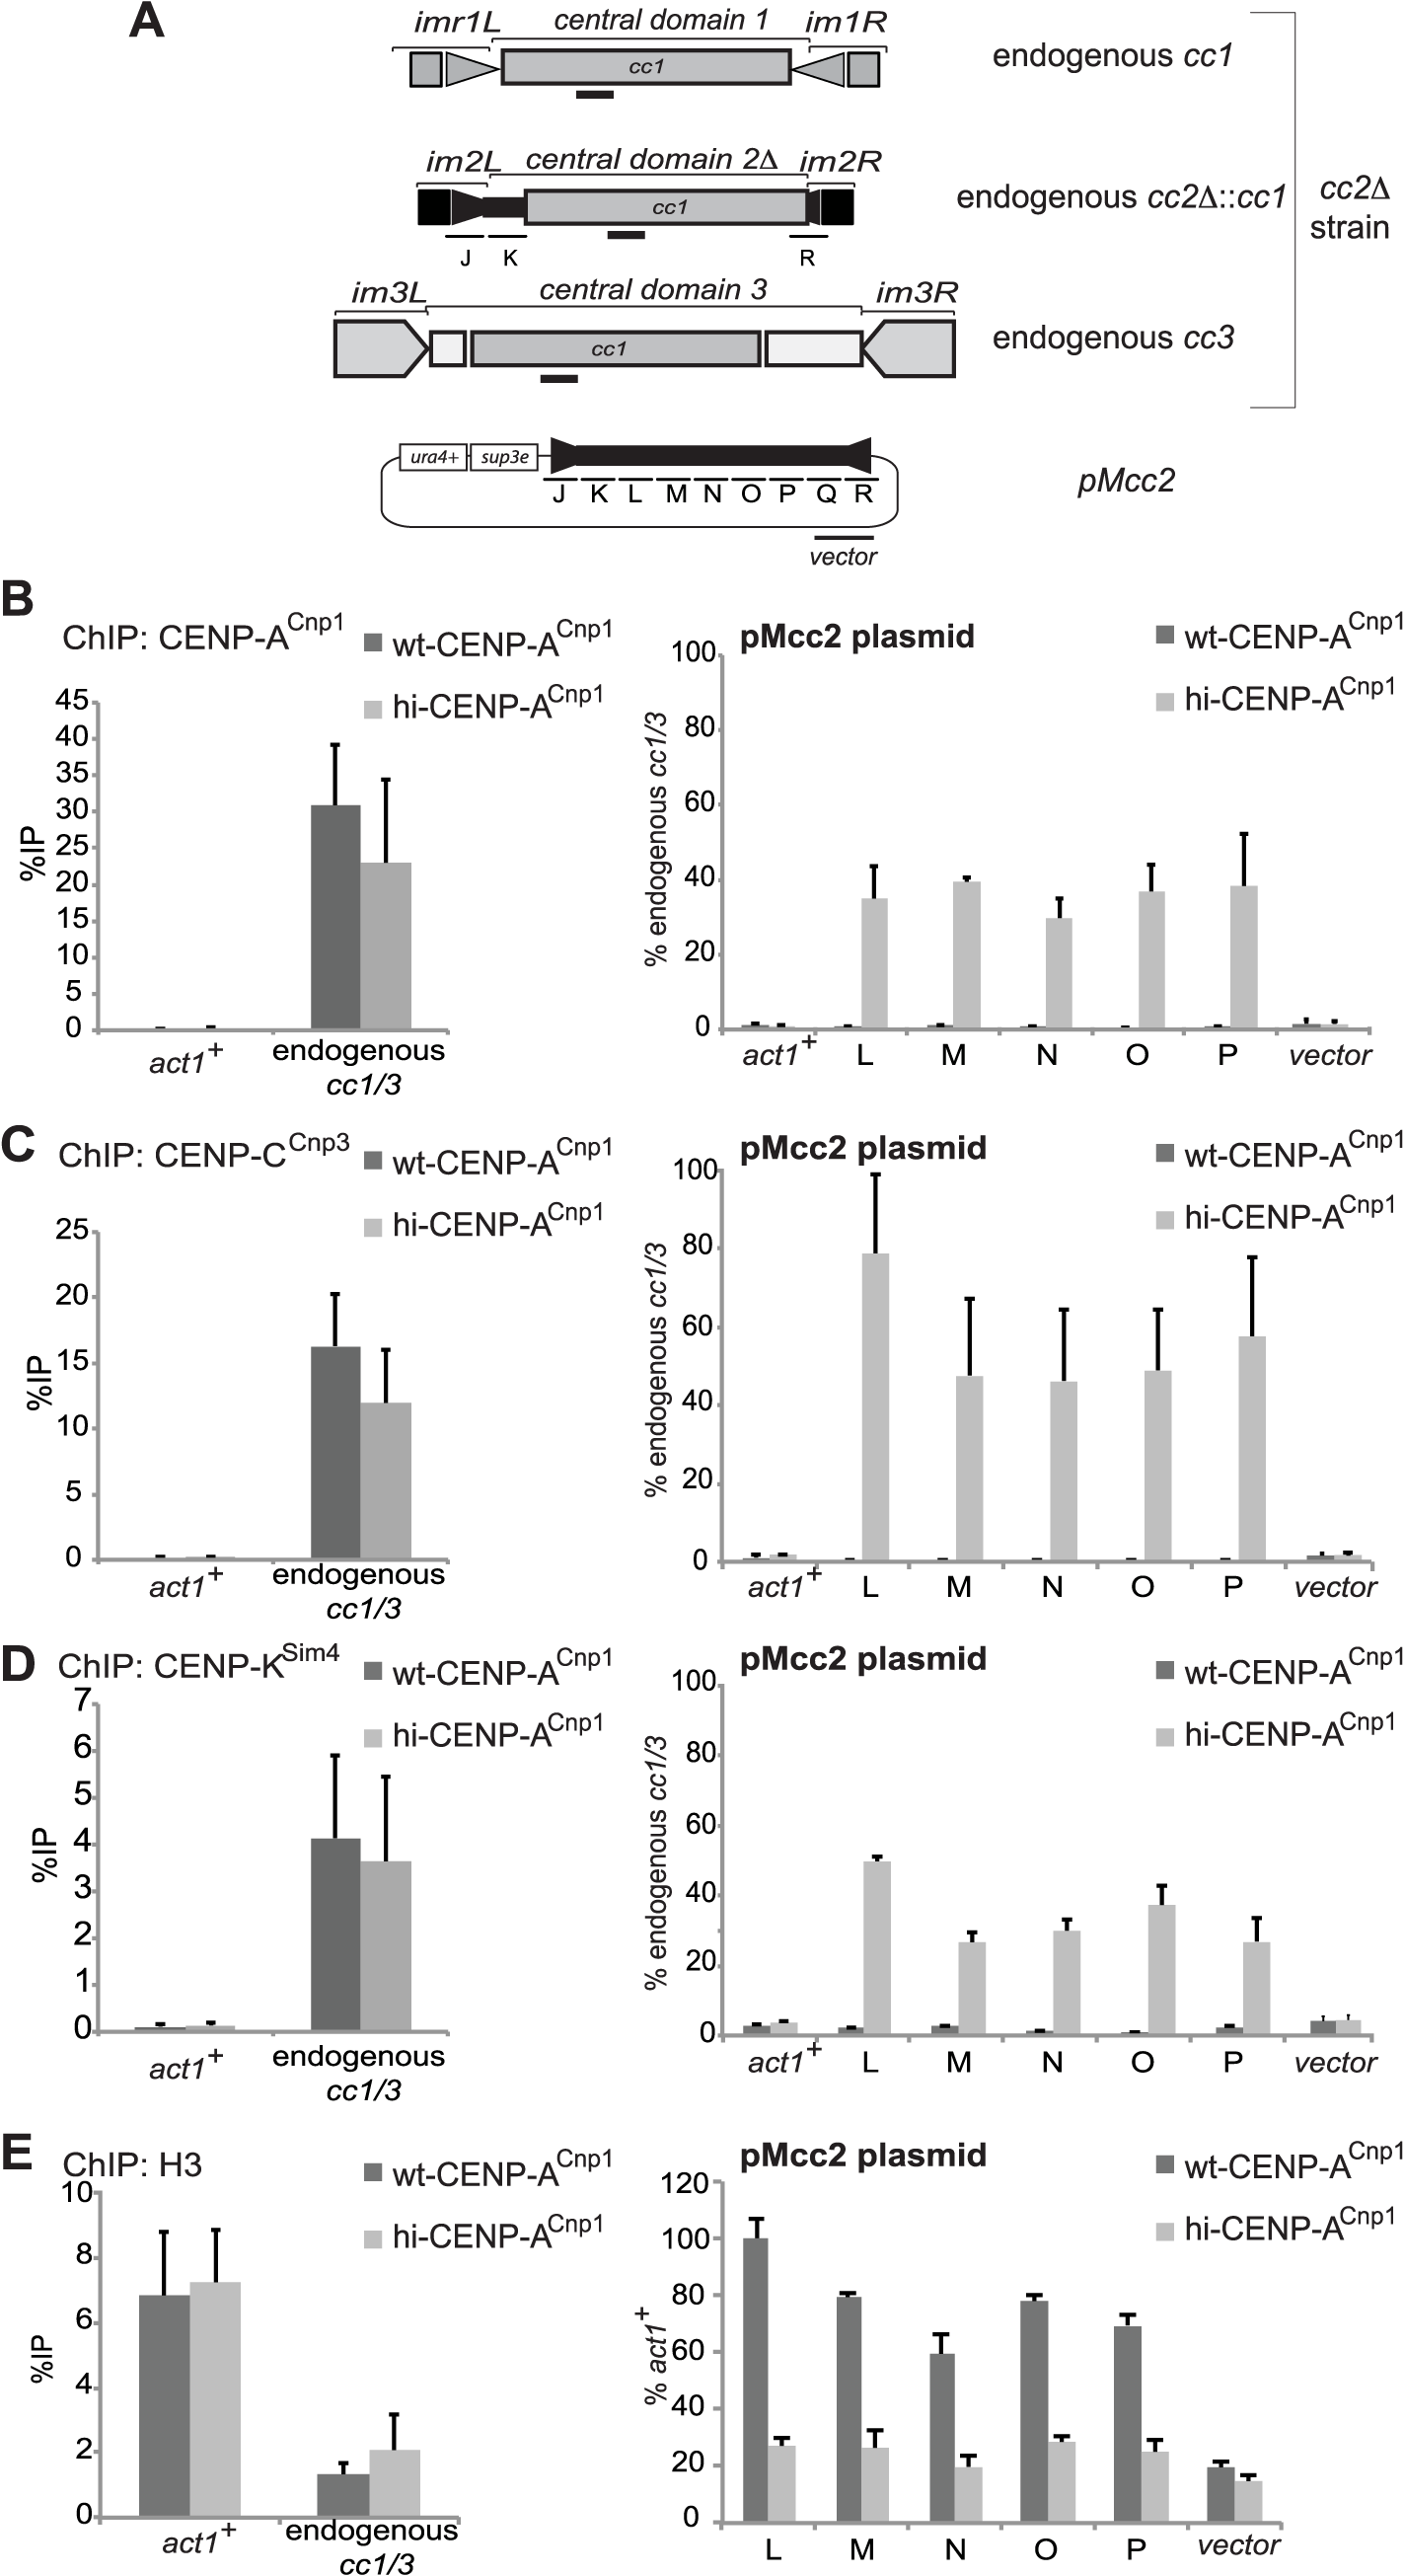 Elevated levels of CENP-A<sup>Cnp1</sup> are sufficient to establish centromeric chromatin in the absence of heterochromatin.